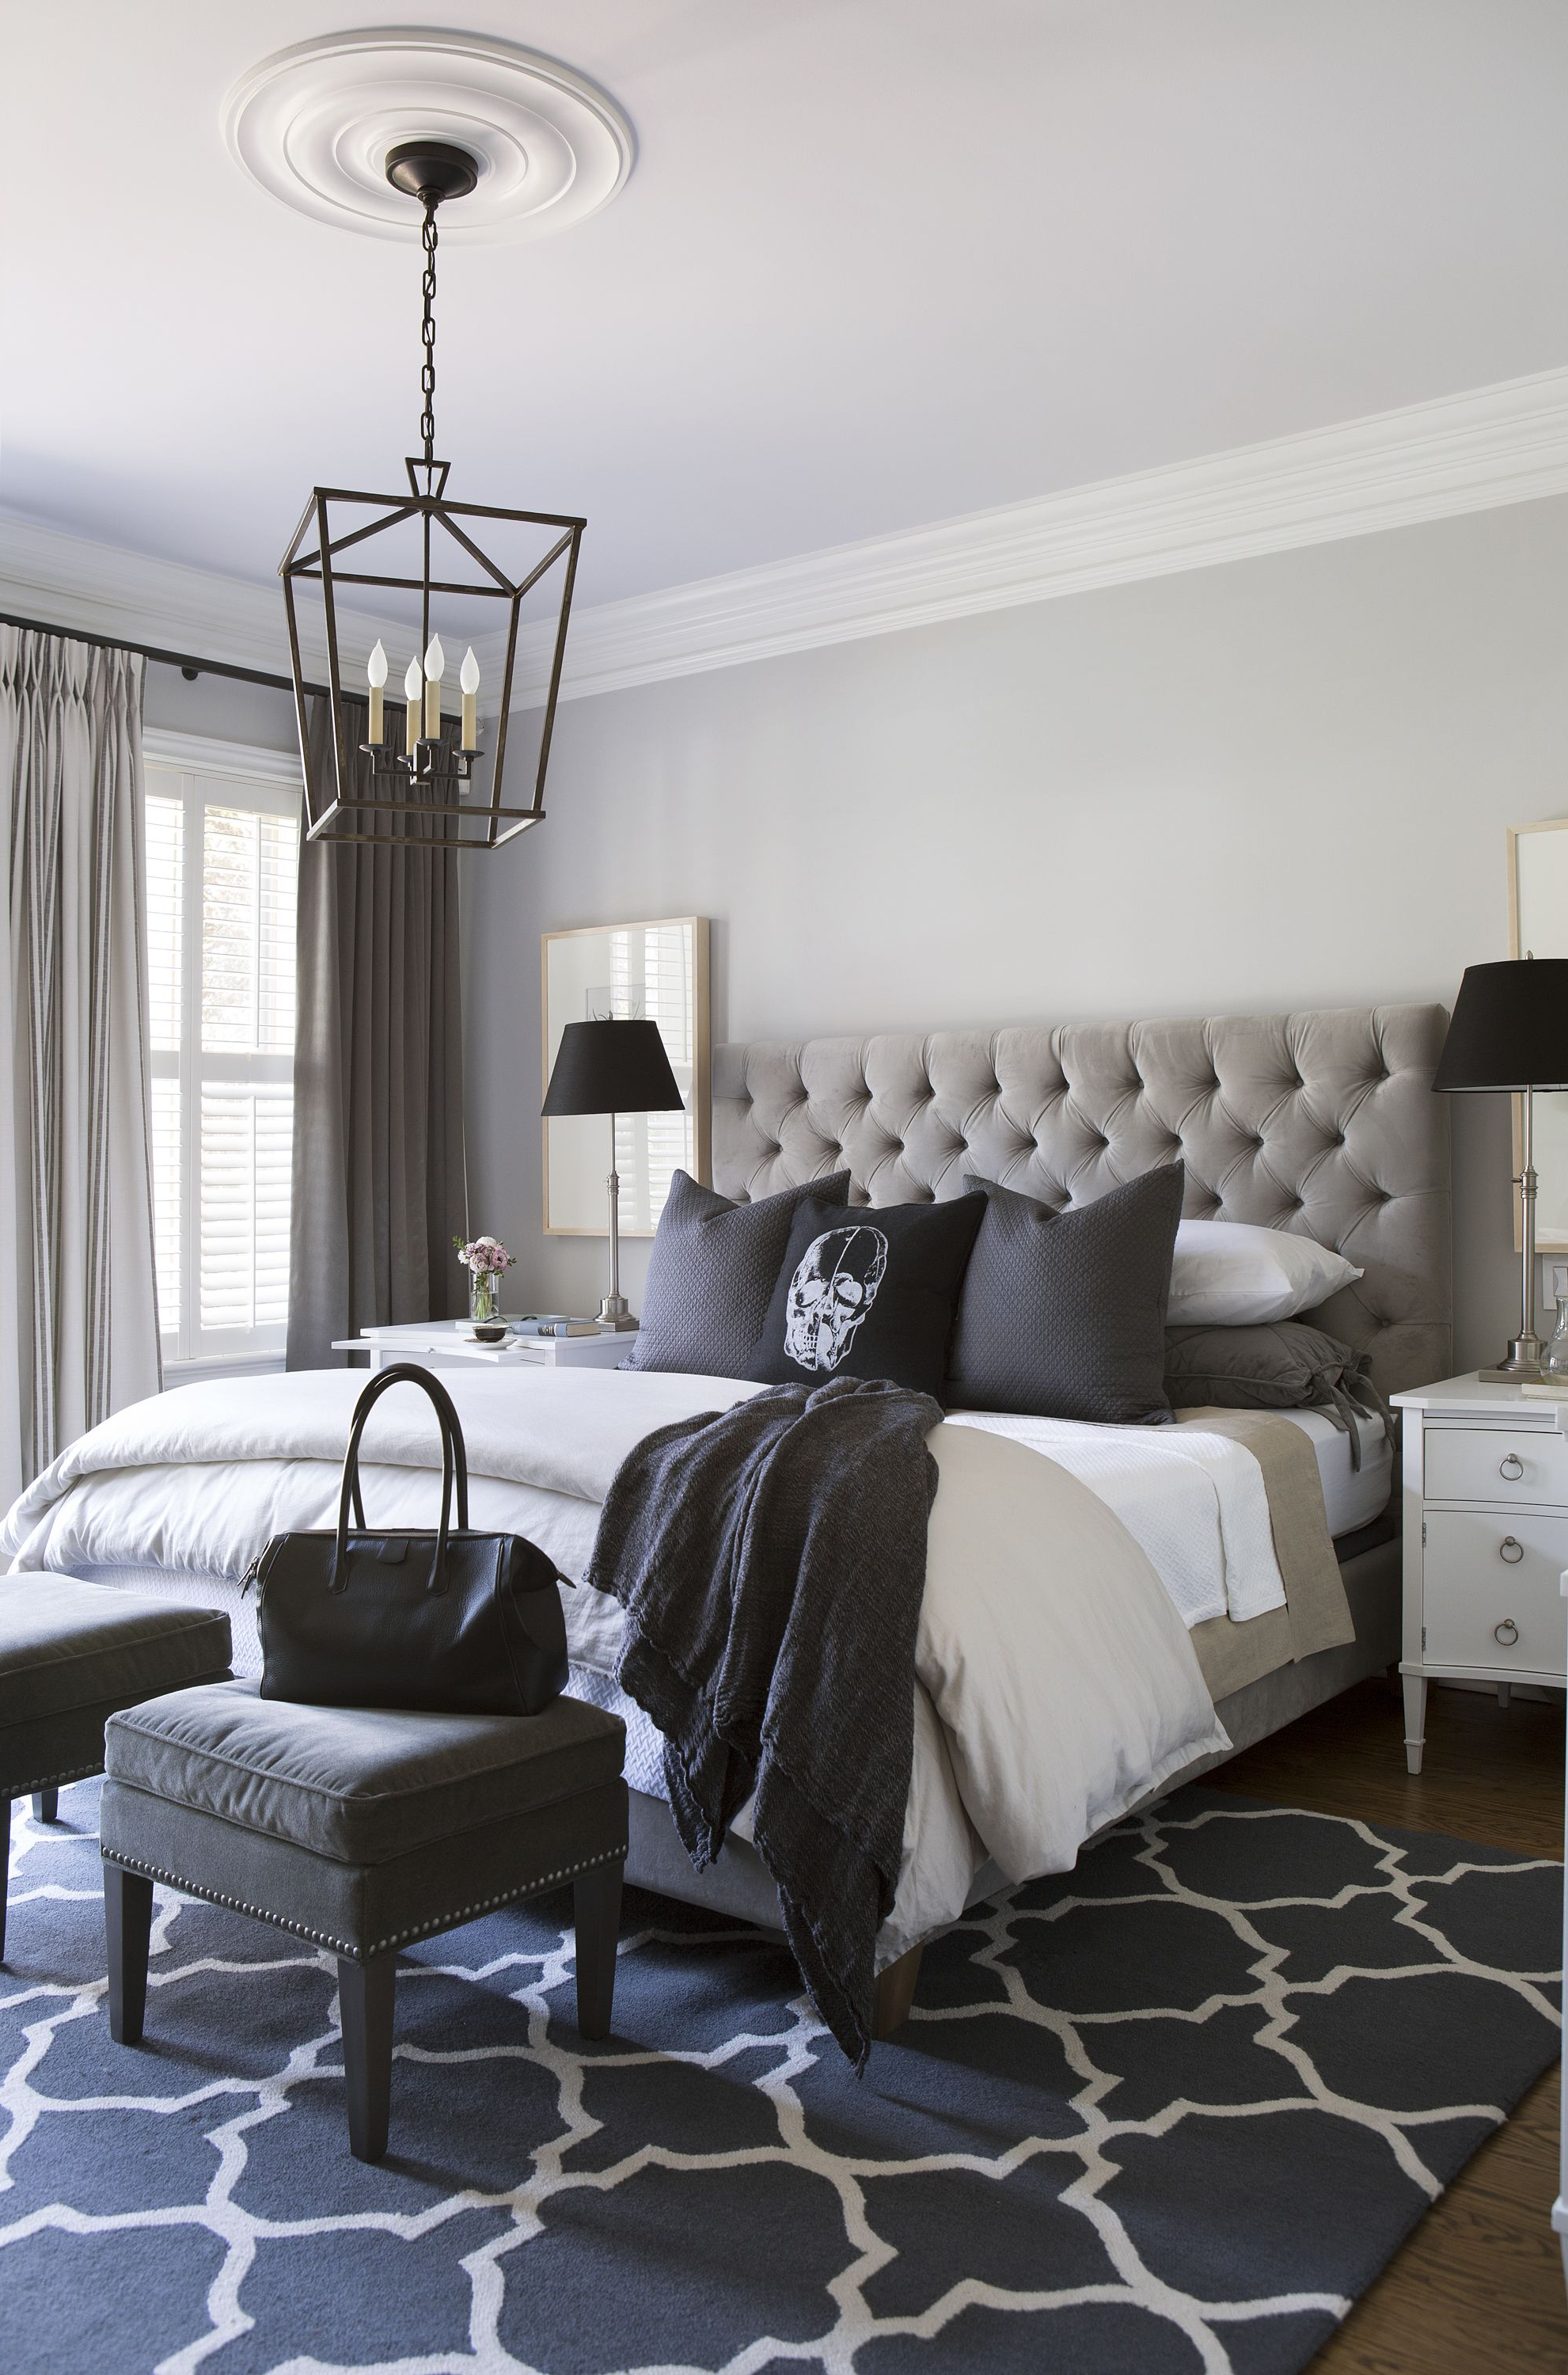 Master Bedroom In Greys And Lavender With Skull Cushion